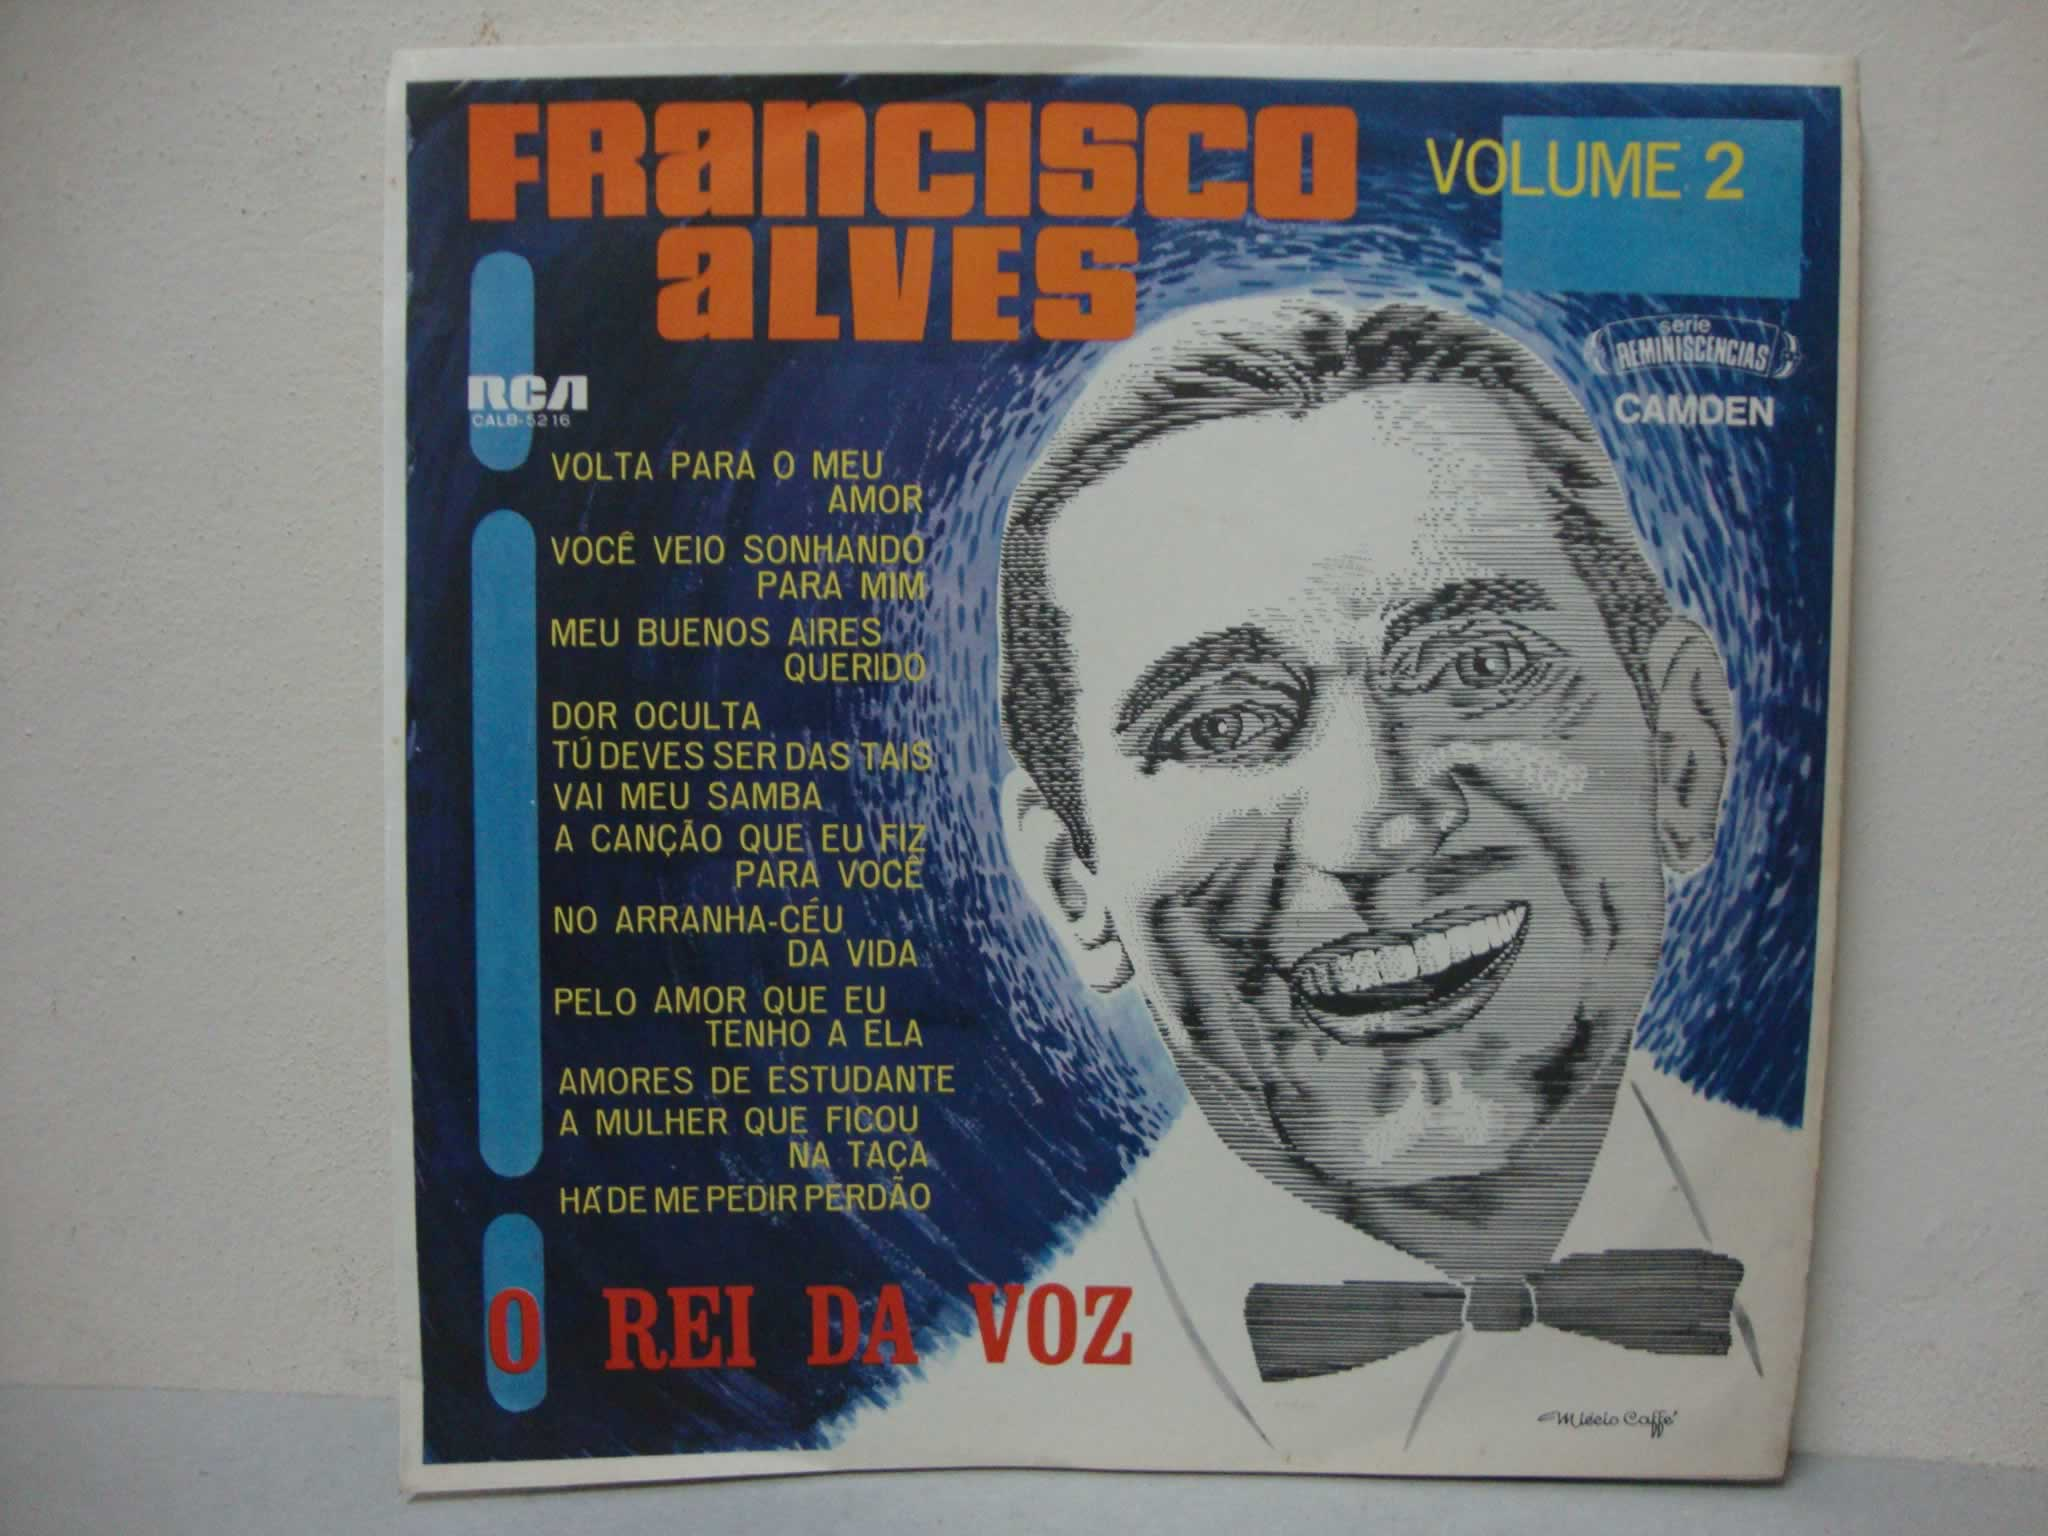 VINIL FRANCISCO ALVES VOLUME 2